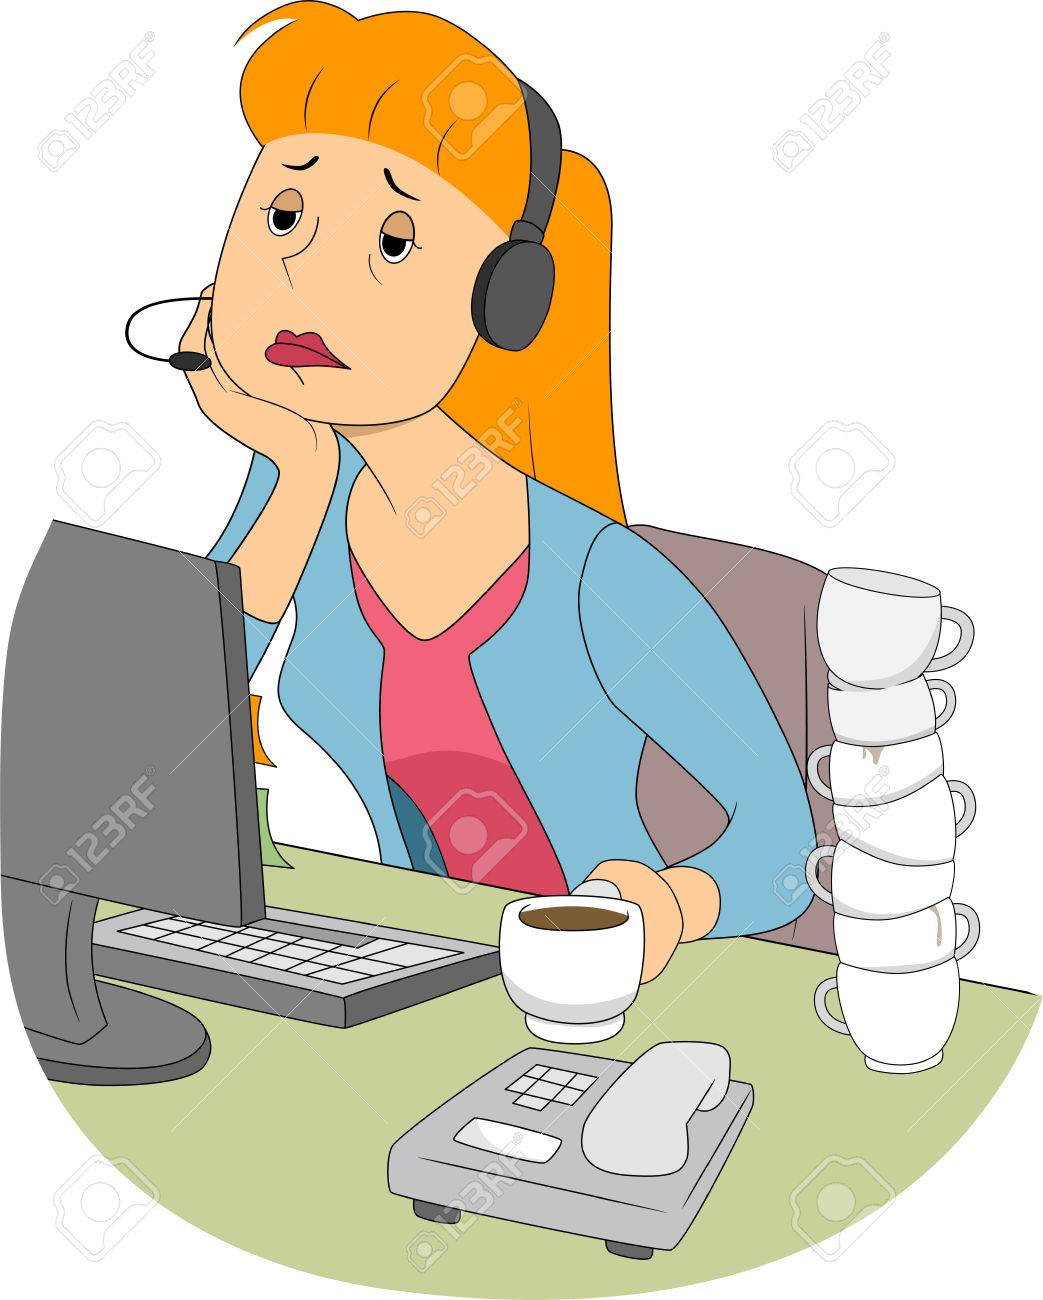 Illustration of a Bored and Sleepy Girl Sitting in Front of a Computer Stock Illustration - 22817701